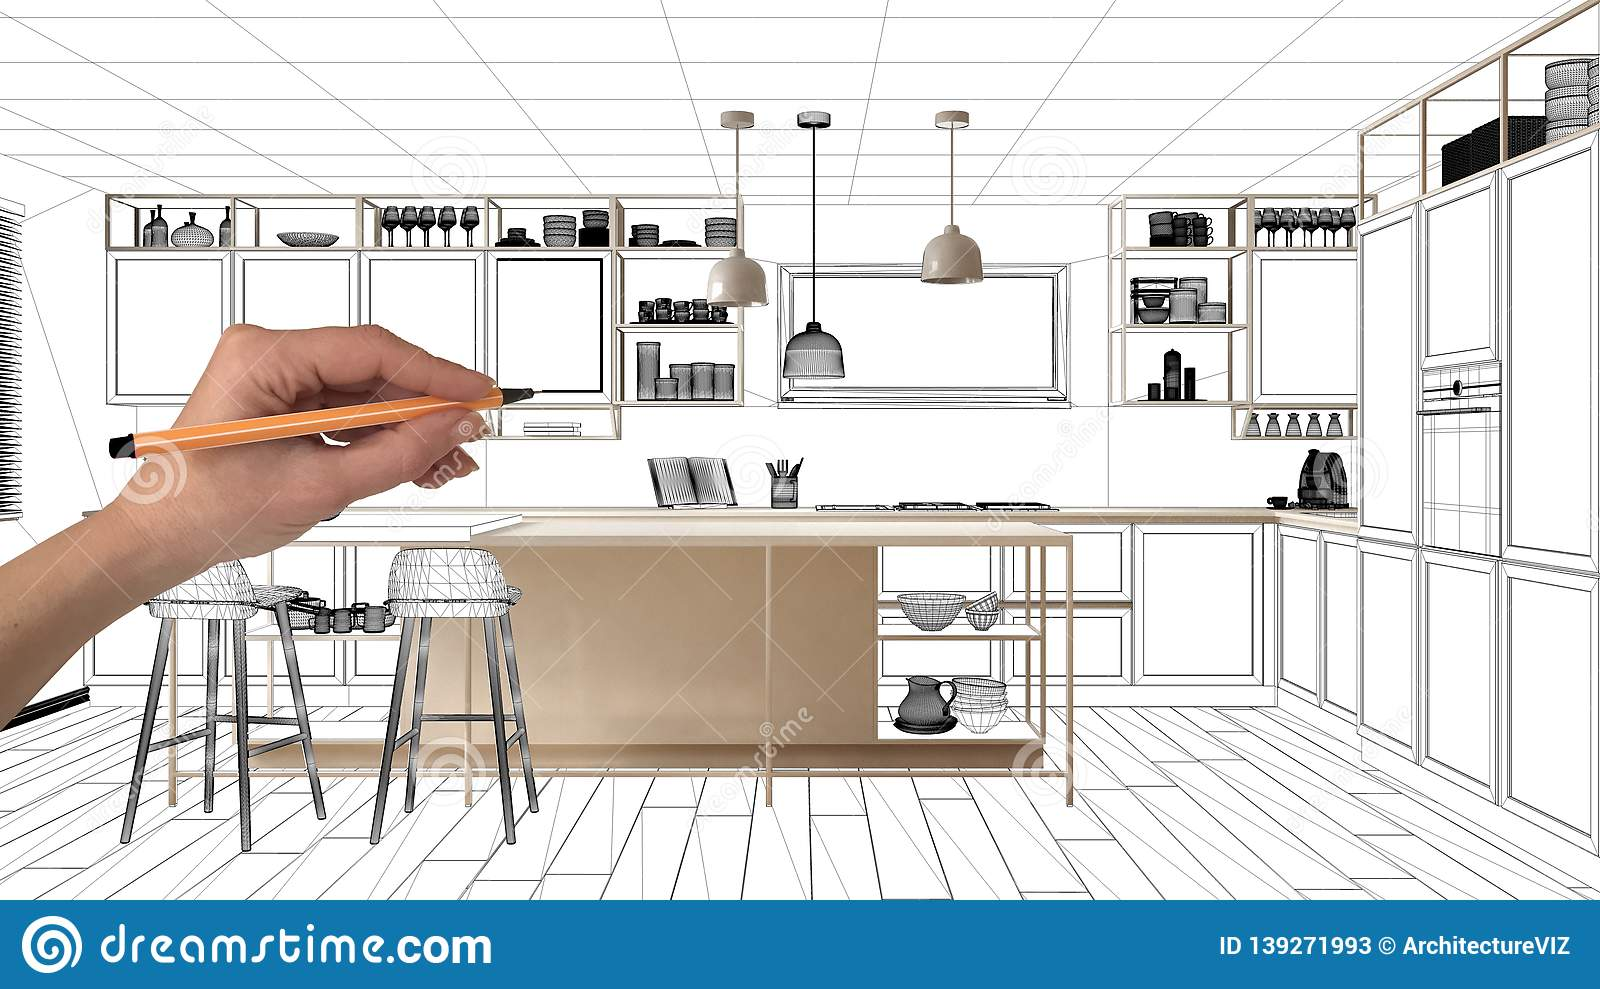 Unfinished Project Under Construction Draft Concept Interior Design Sketch Hand Drawing Real Kitchen Sketch With Blueprint Stock Image Image Of Kitchen Drawing 139271993